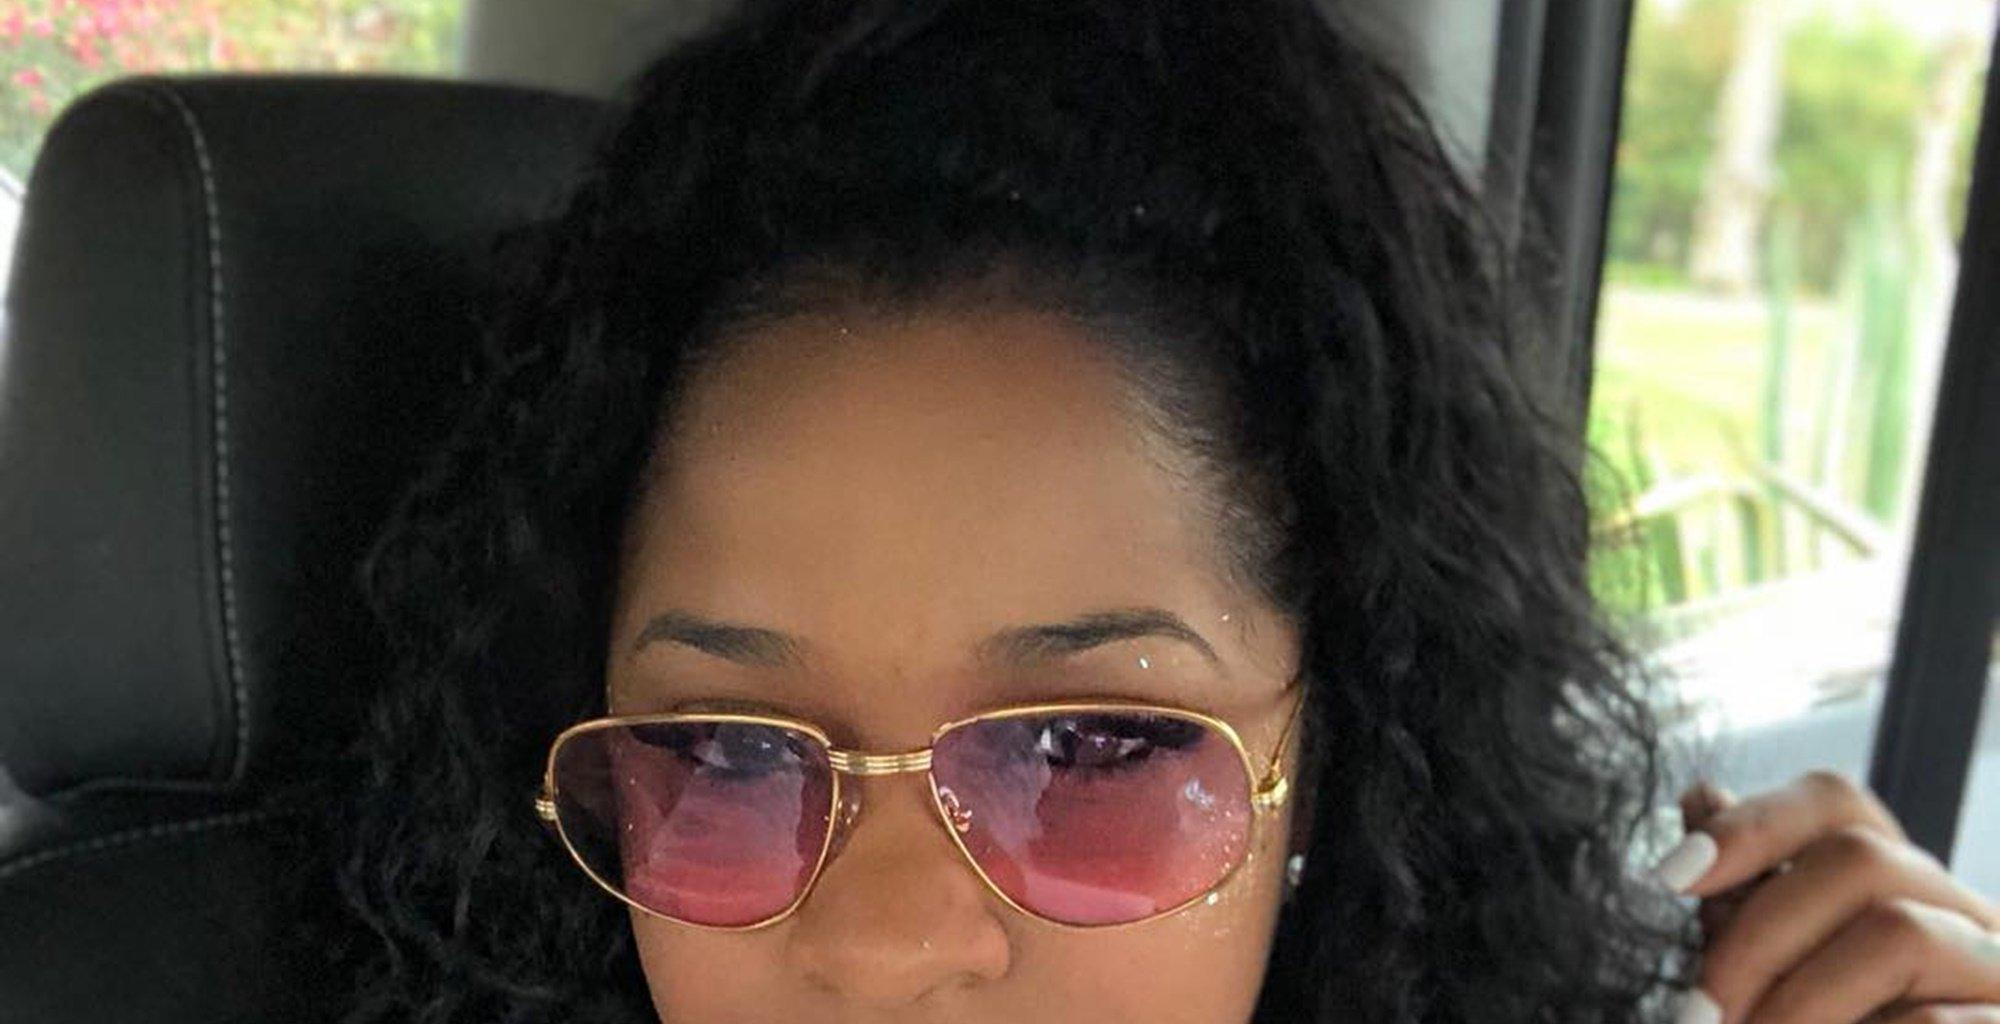 Toya Wright's Latest Jaw-Dropping Look Has Fans In Awe - They Simply Adore Her Skintight Dress